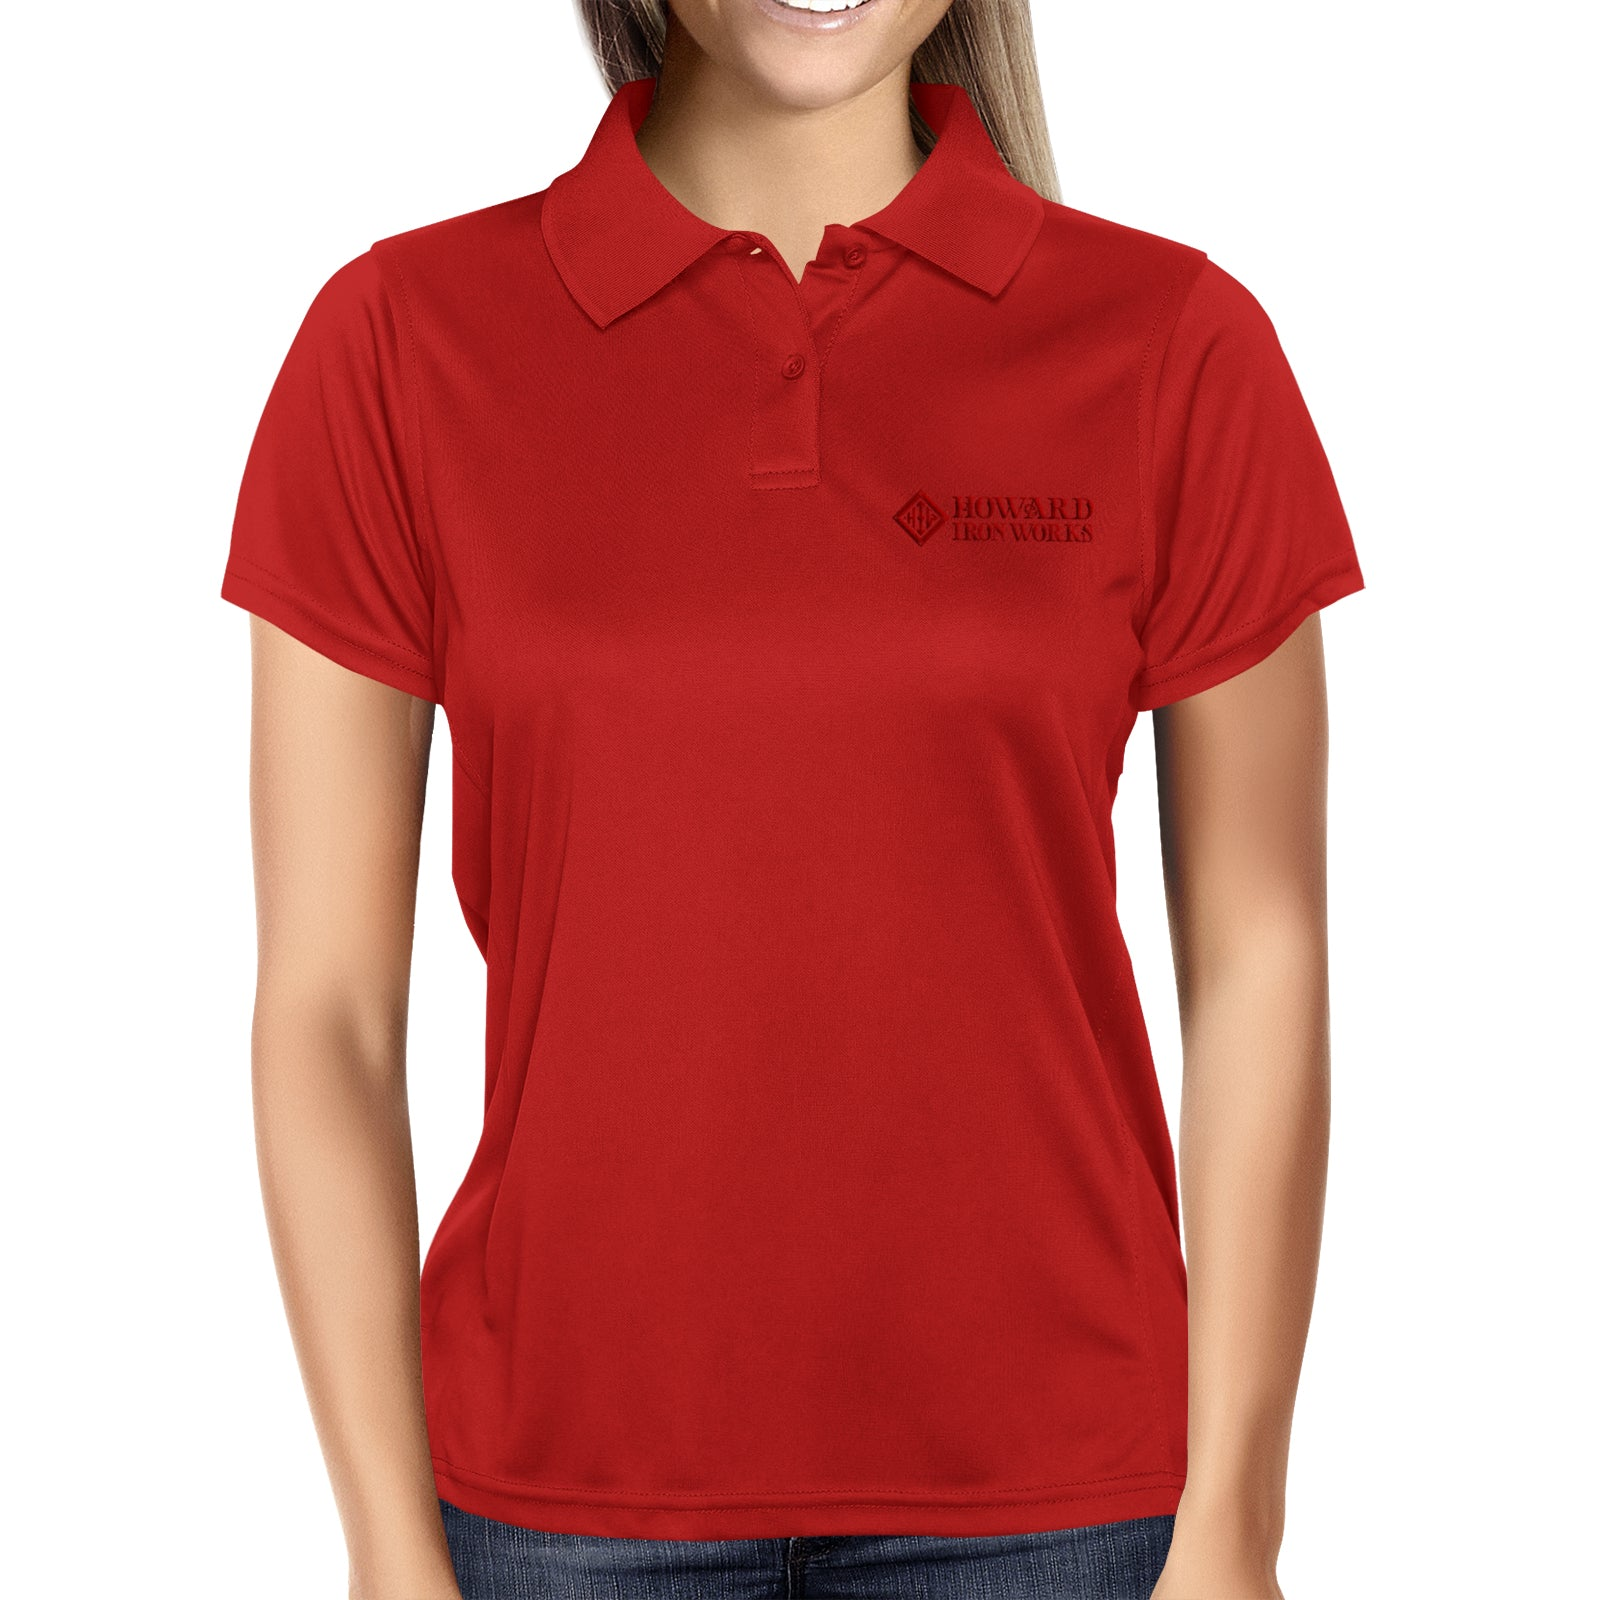 Ladies Polo Shirt, Short Sleeve, Red - from Howard Iron Works Printing Museum